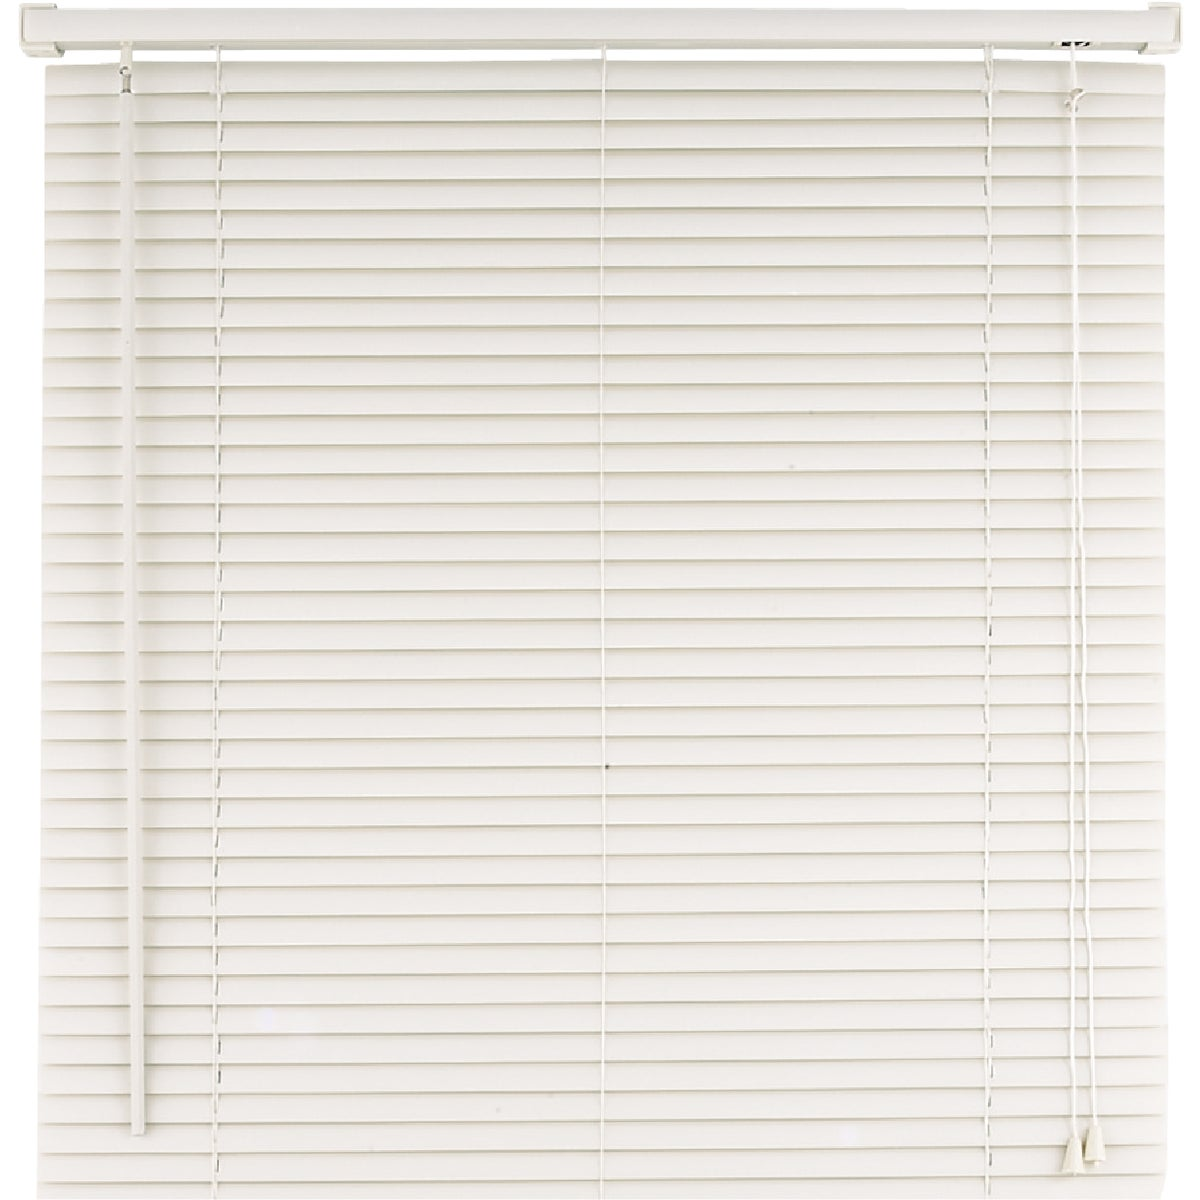 27X72 WHITE MINI BLIND - 2772W by Lotus Wind Incom